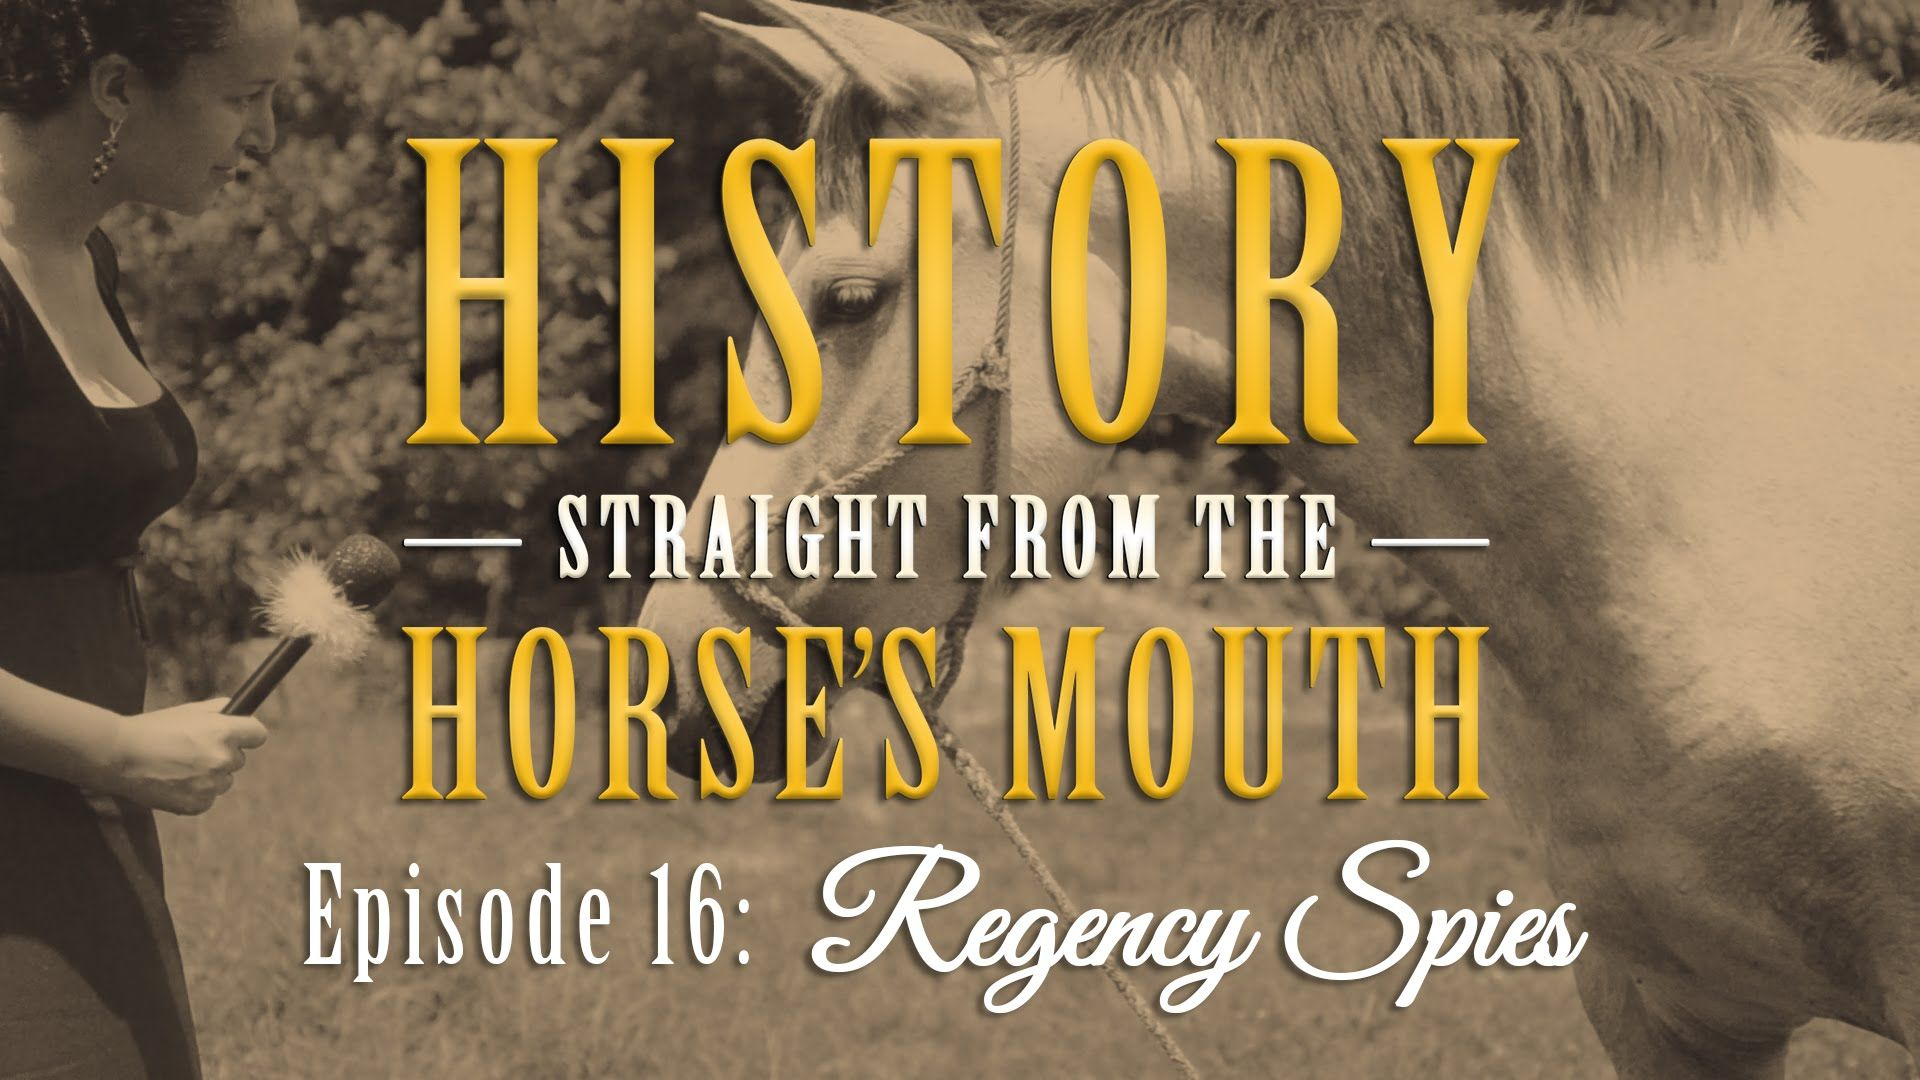 Erica Monroe guest stars and talks about Regency Spies: History from the Horse's Mouth (Episode 16)